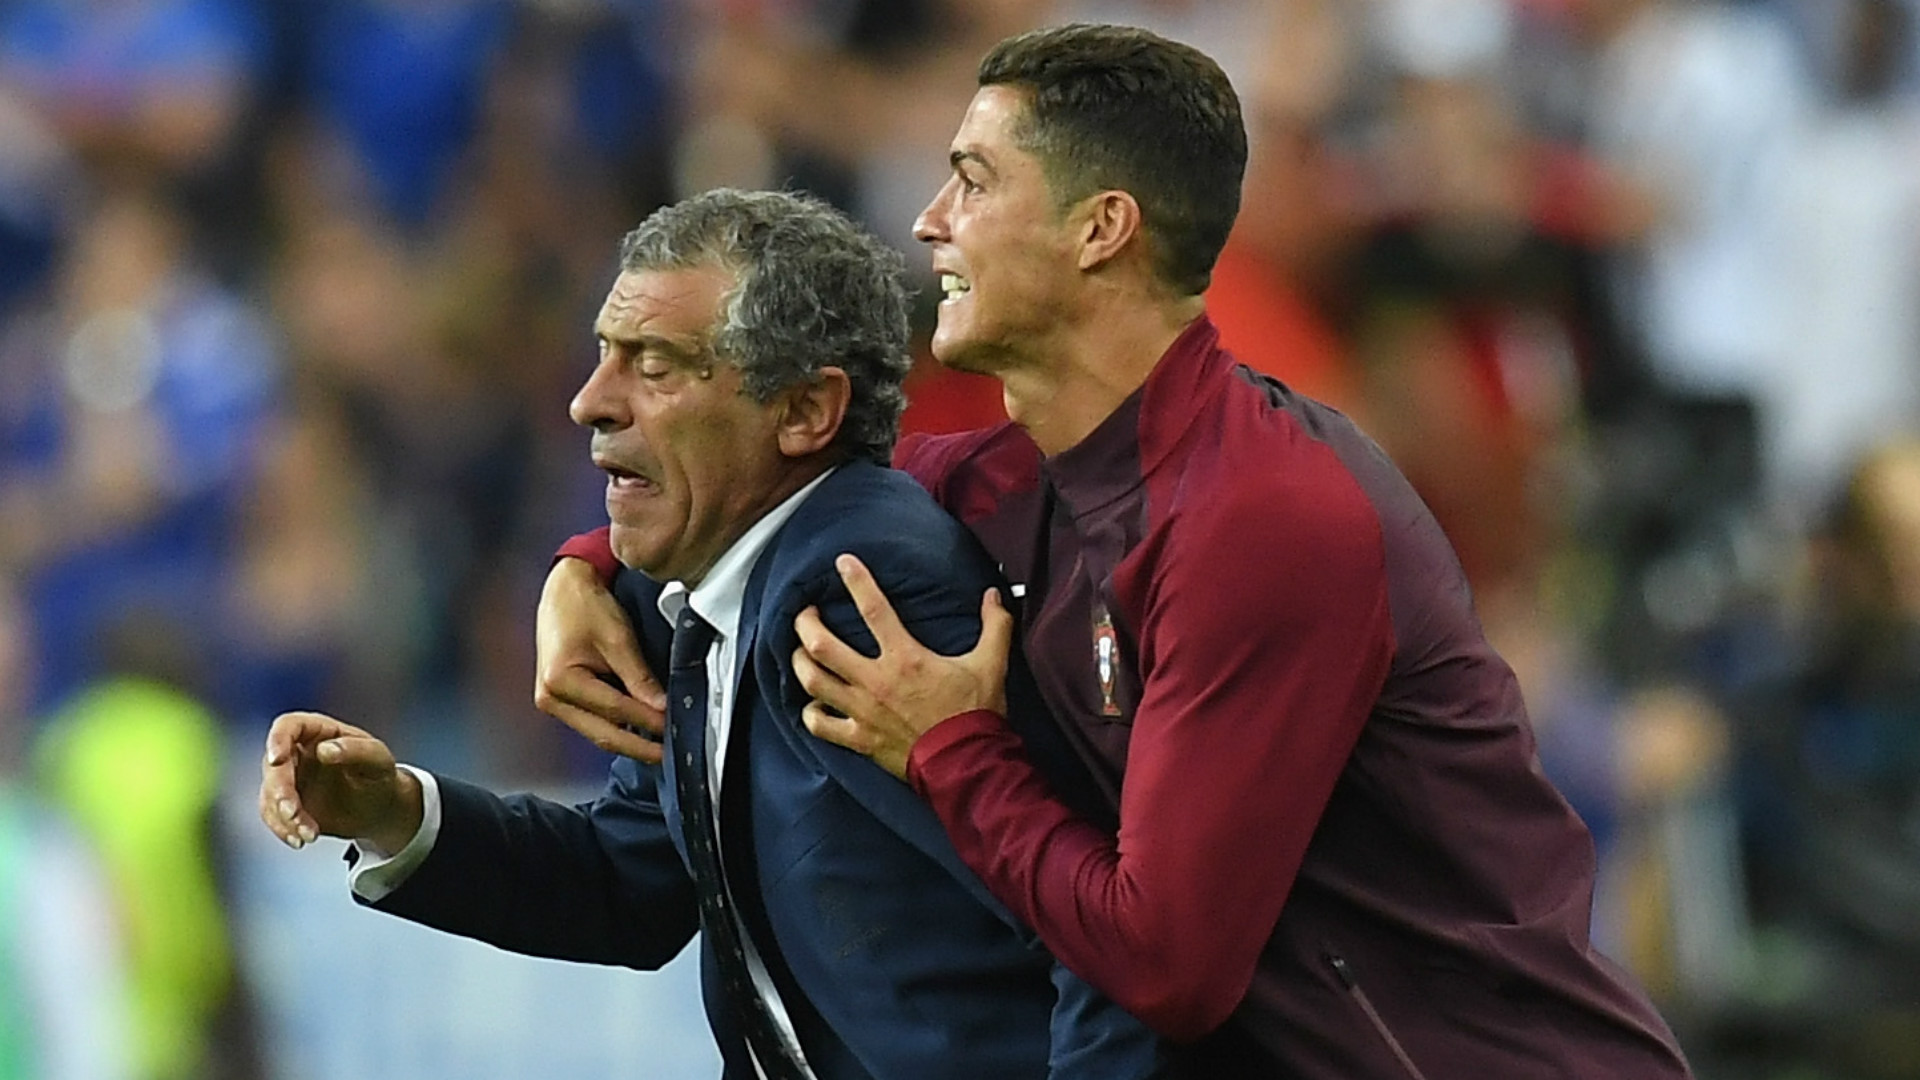 tom andrews - No more fatalism, loss or lament: Ronaldo leads Portugal into new ...